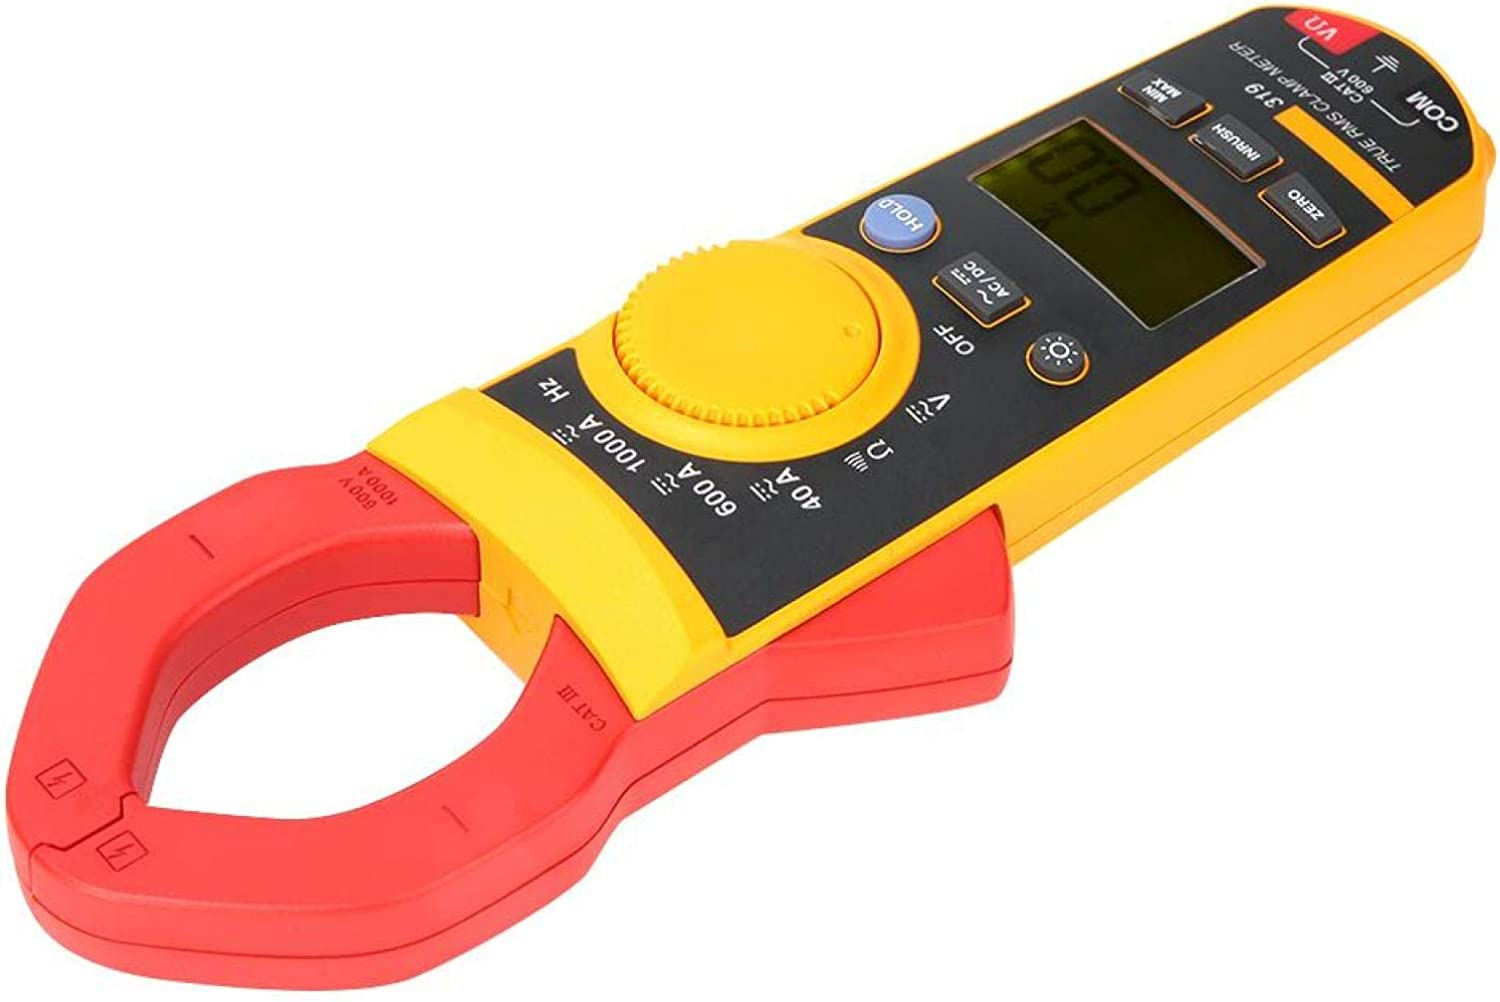 Jeanoko high Cheap sale Precision Clamp Meter Digital Tester Me Special price for a limited time